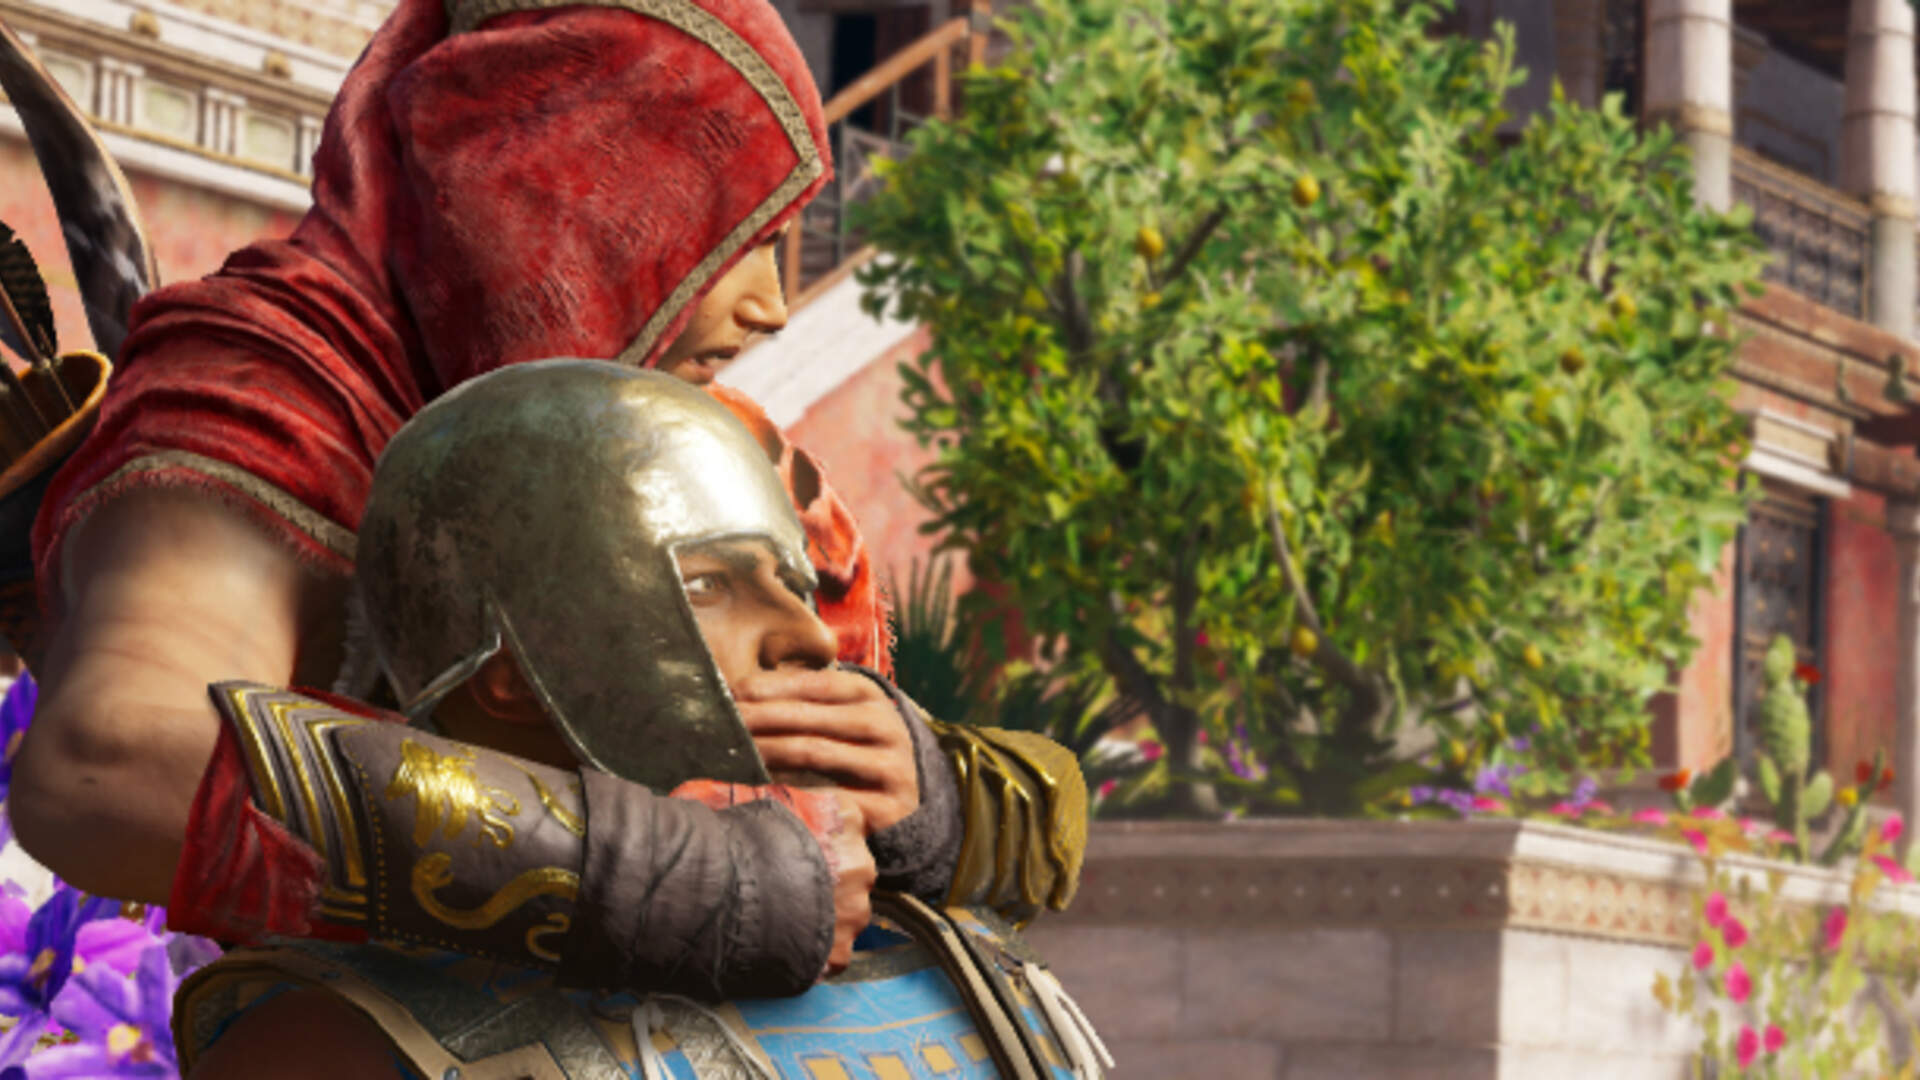 Assassin's Creed Odyssey Legacy of the First Blade DLC Launches Next Week